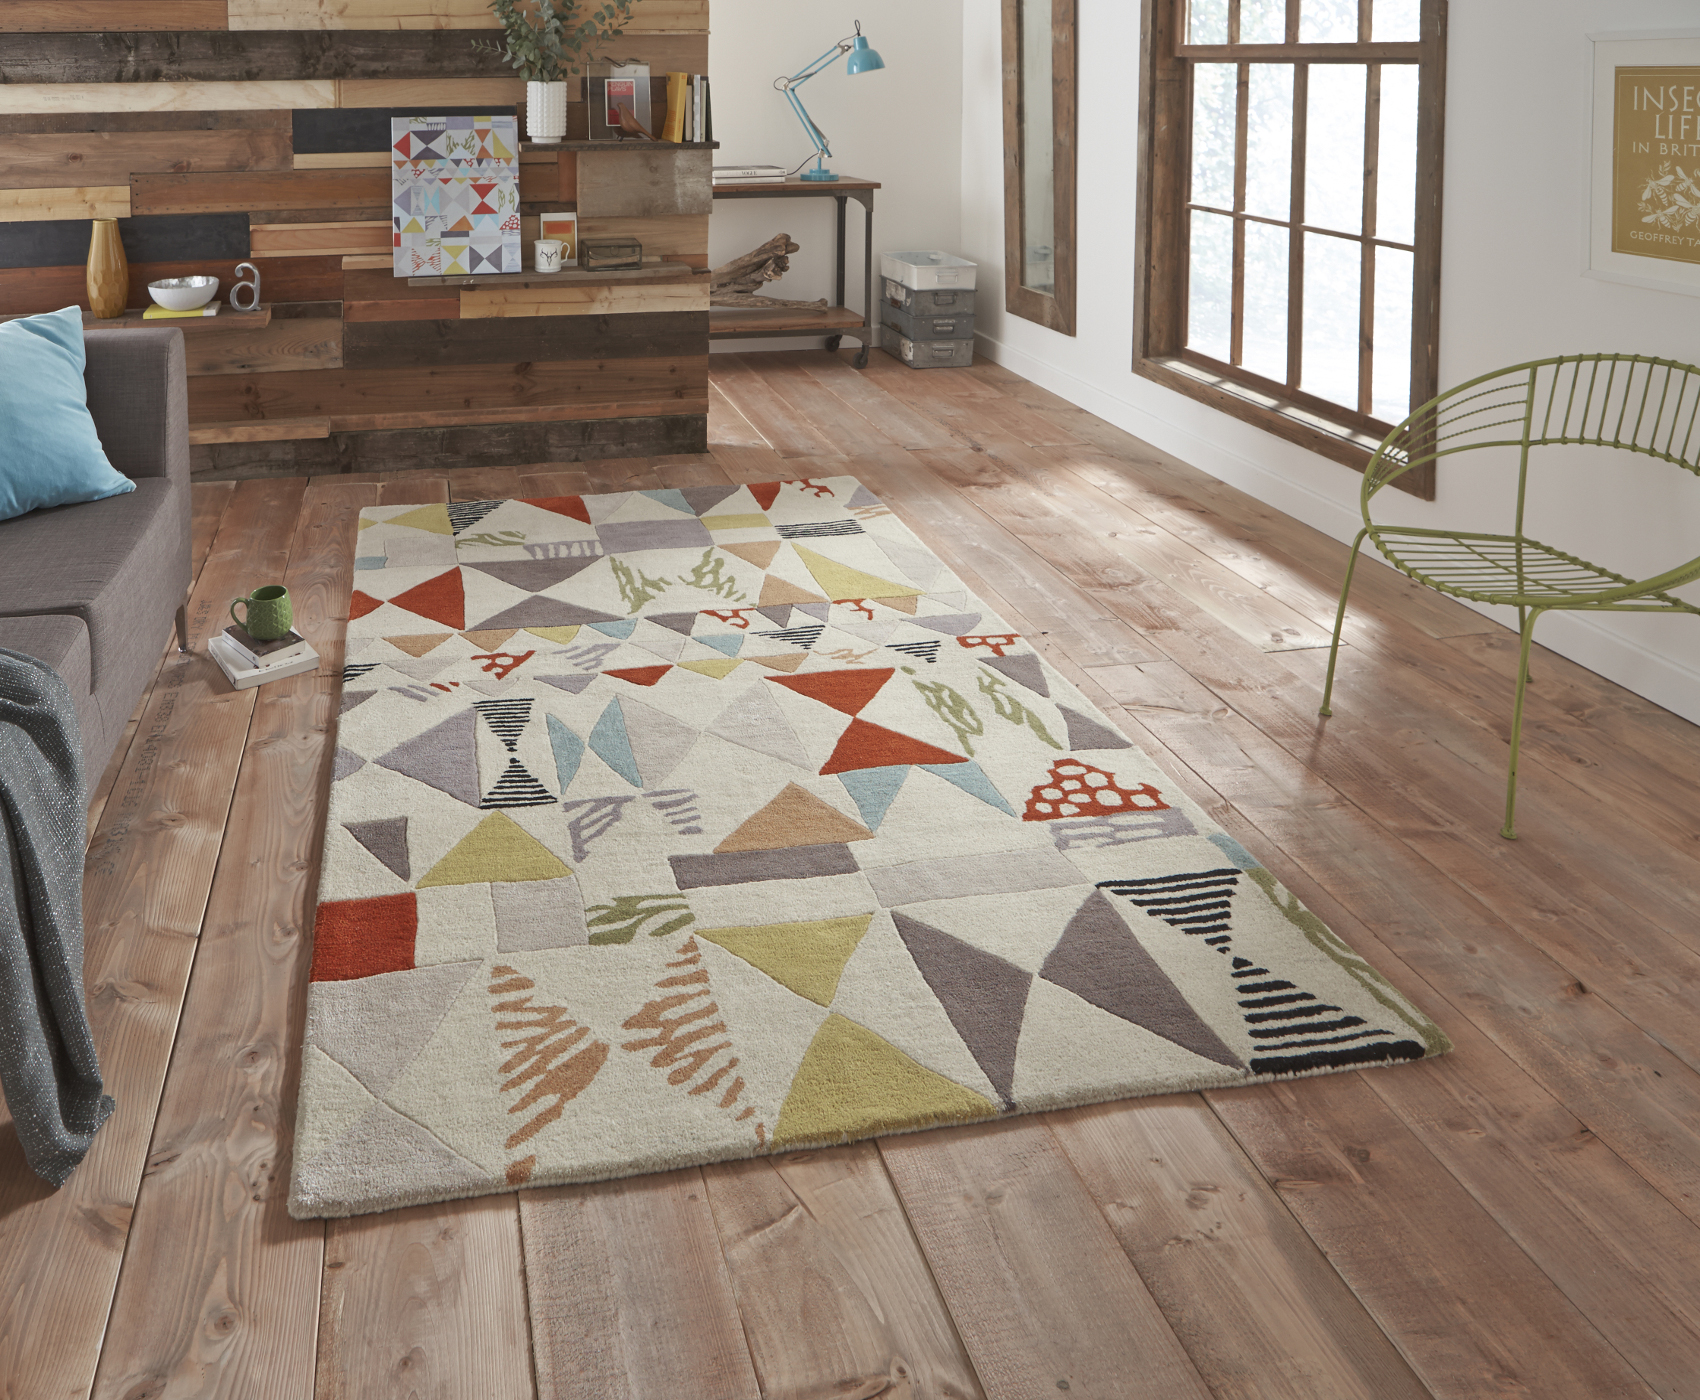 Fiona Howard Designer Rug Wool Blend Large Modern Retro Pattern